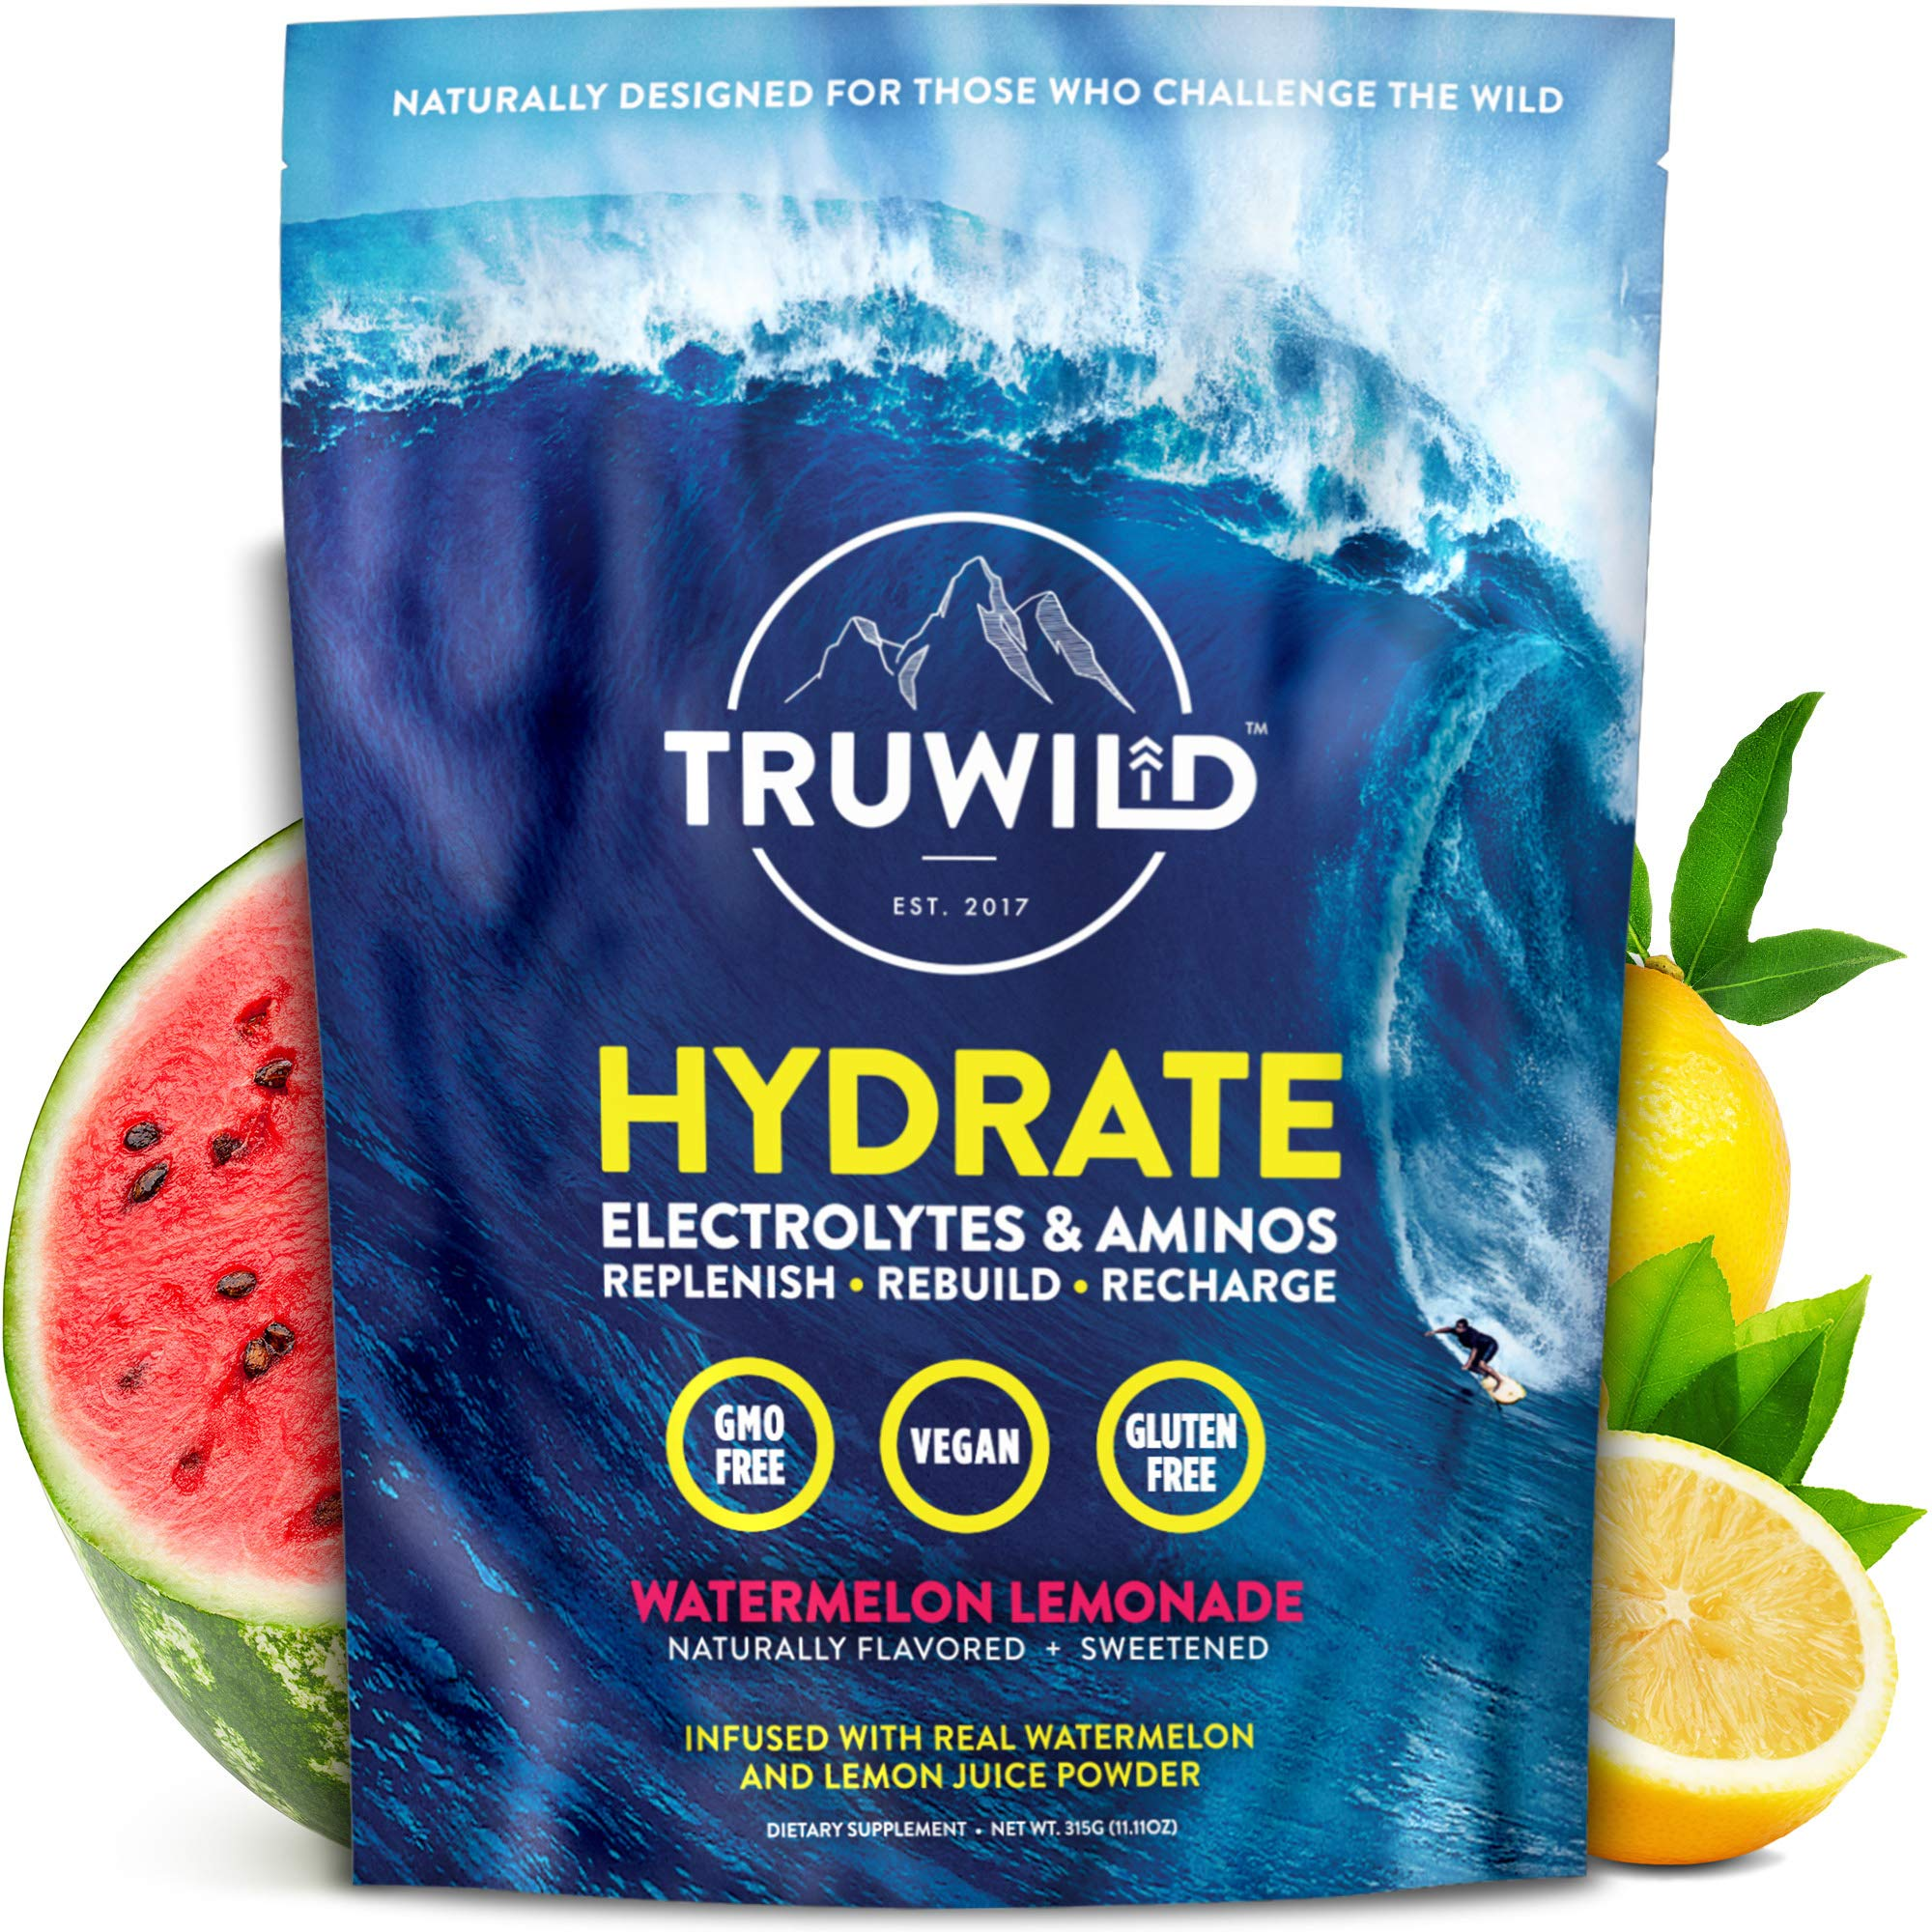 Hydrate Electrolyte + Amino Acids Drink Mix Powder | Clean Post Workout Recovery & Immune Supplement | Vitamin C, Zinc & Magnesium Support | Natural Lemon & Watermelon Juice | Vegan | Non GMO